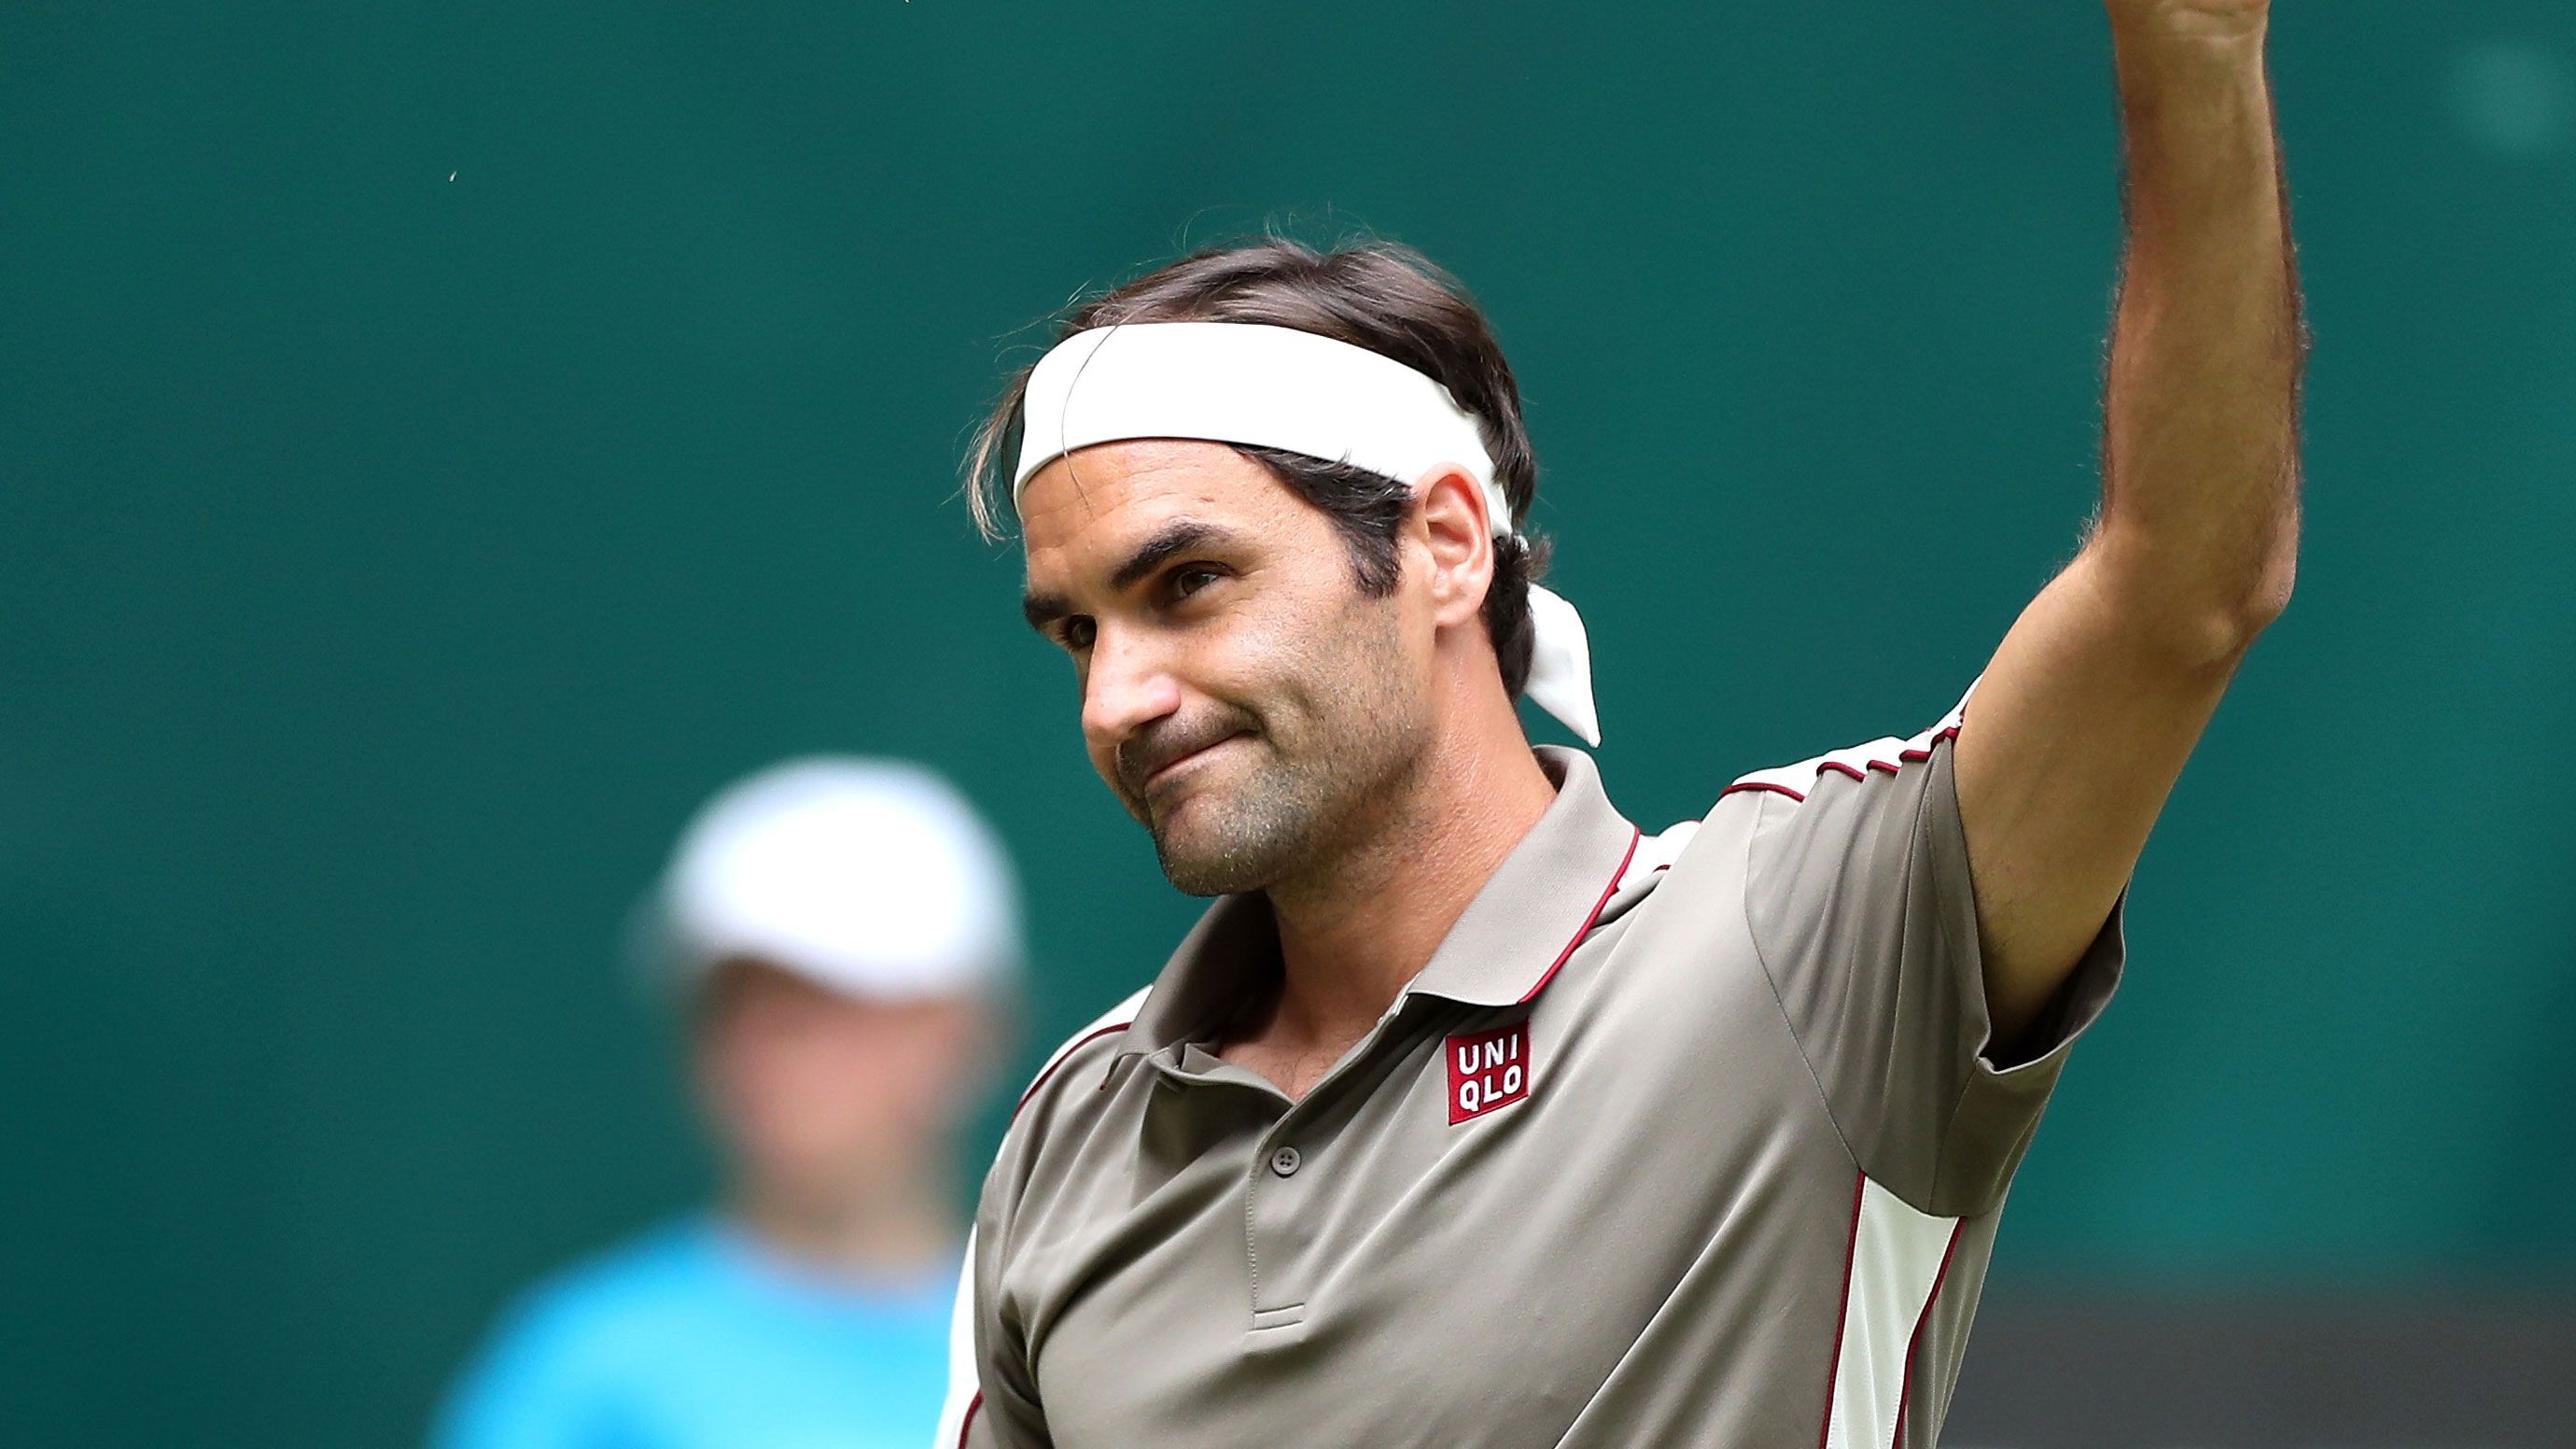 Tennis legend Roger Federer explains why coaching should not be brought in